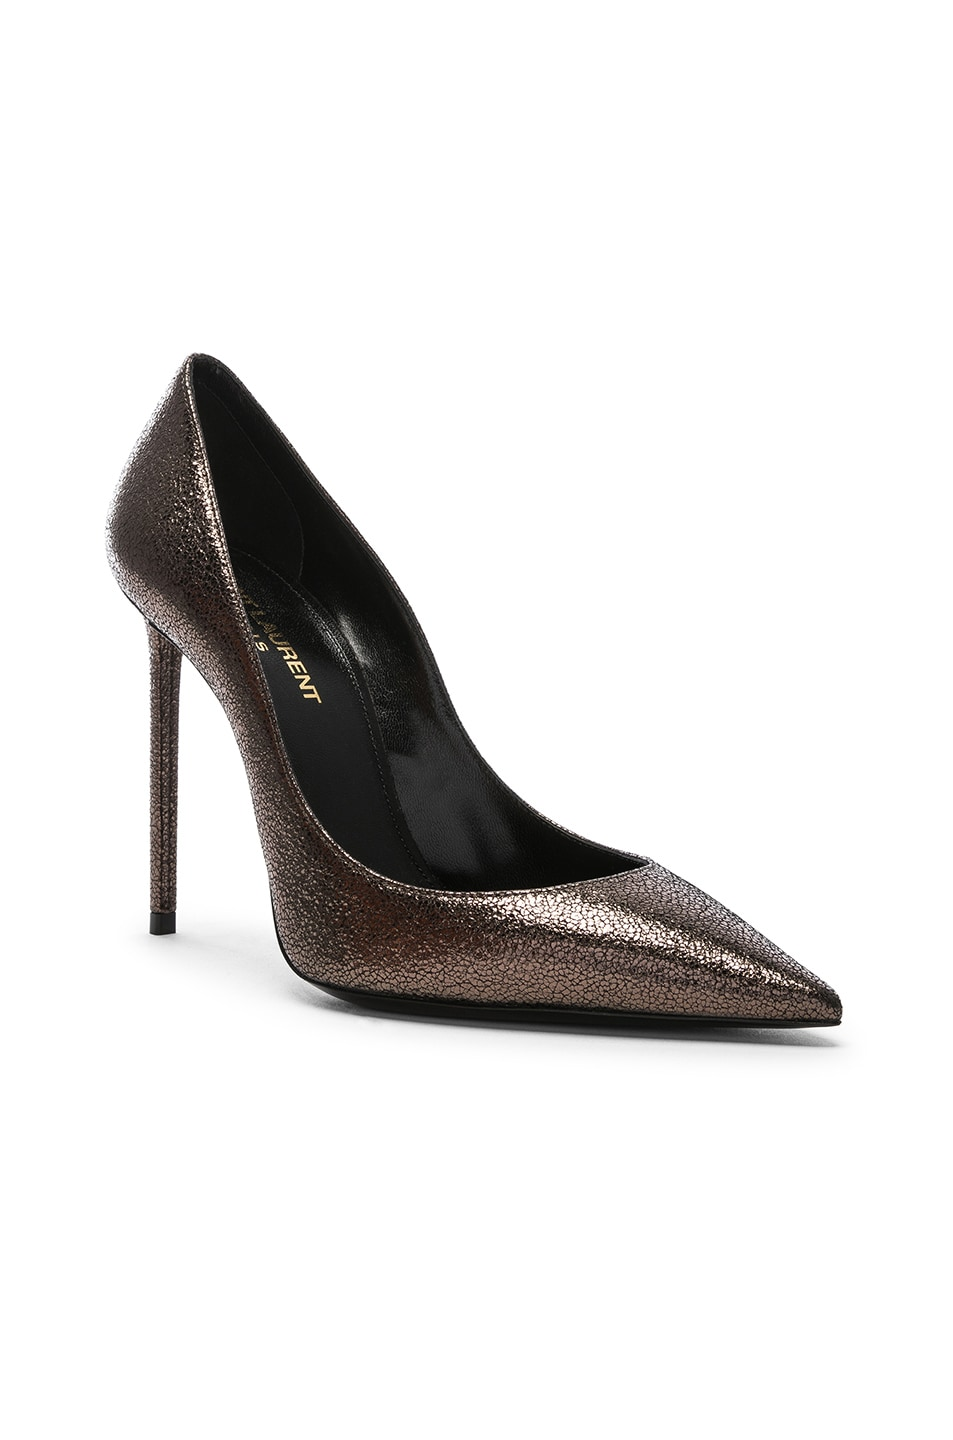 Image 2 of Saint Laurent Zoe Pumps in Gunmetal